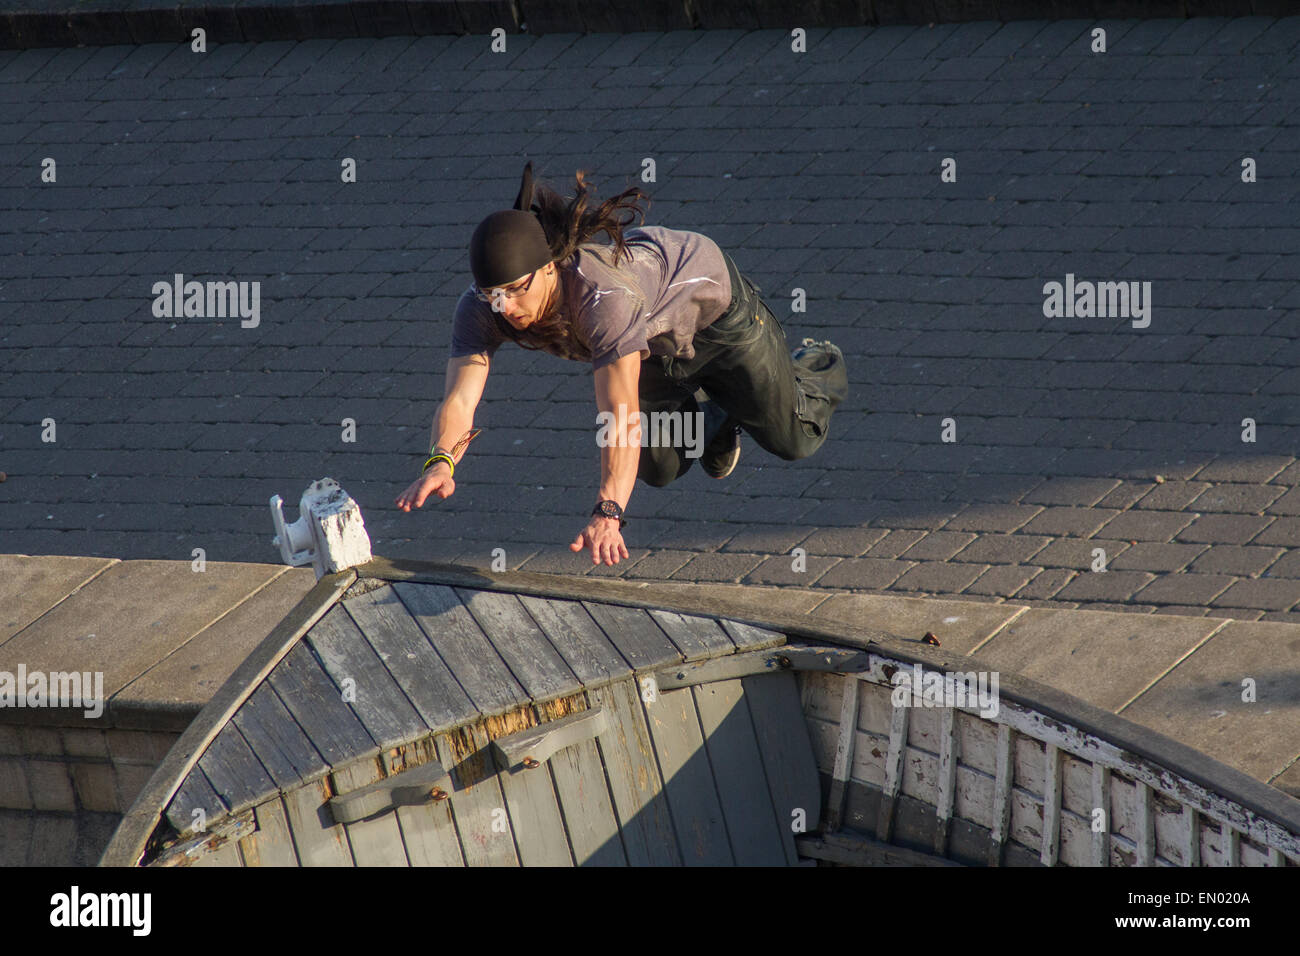 A man practises freerunning or parkour on to a boat on Brighton seafront - Stock Image